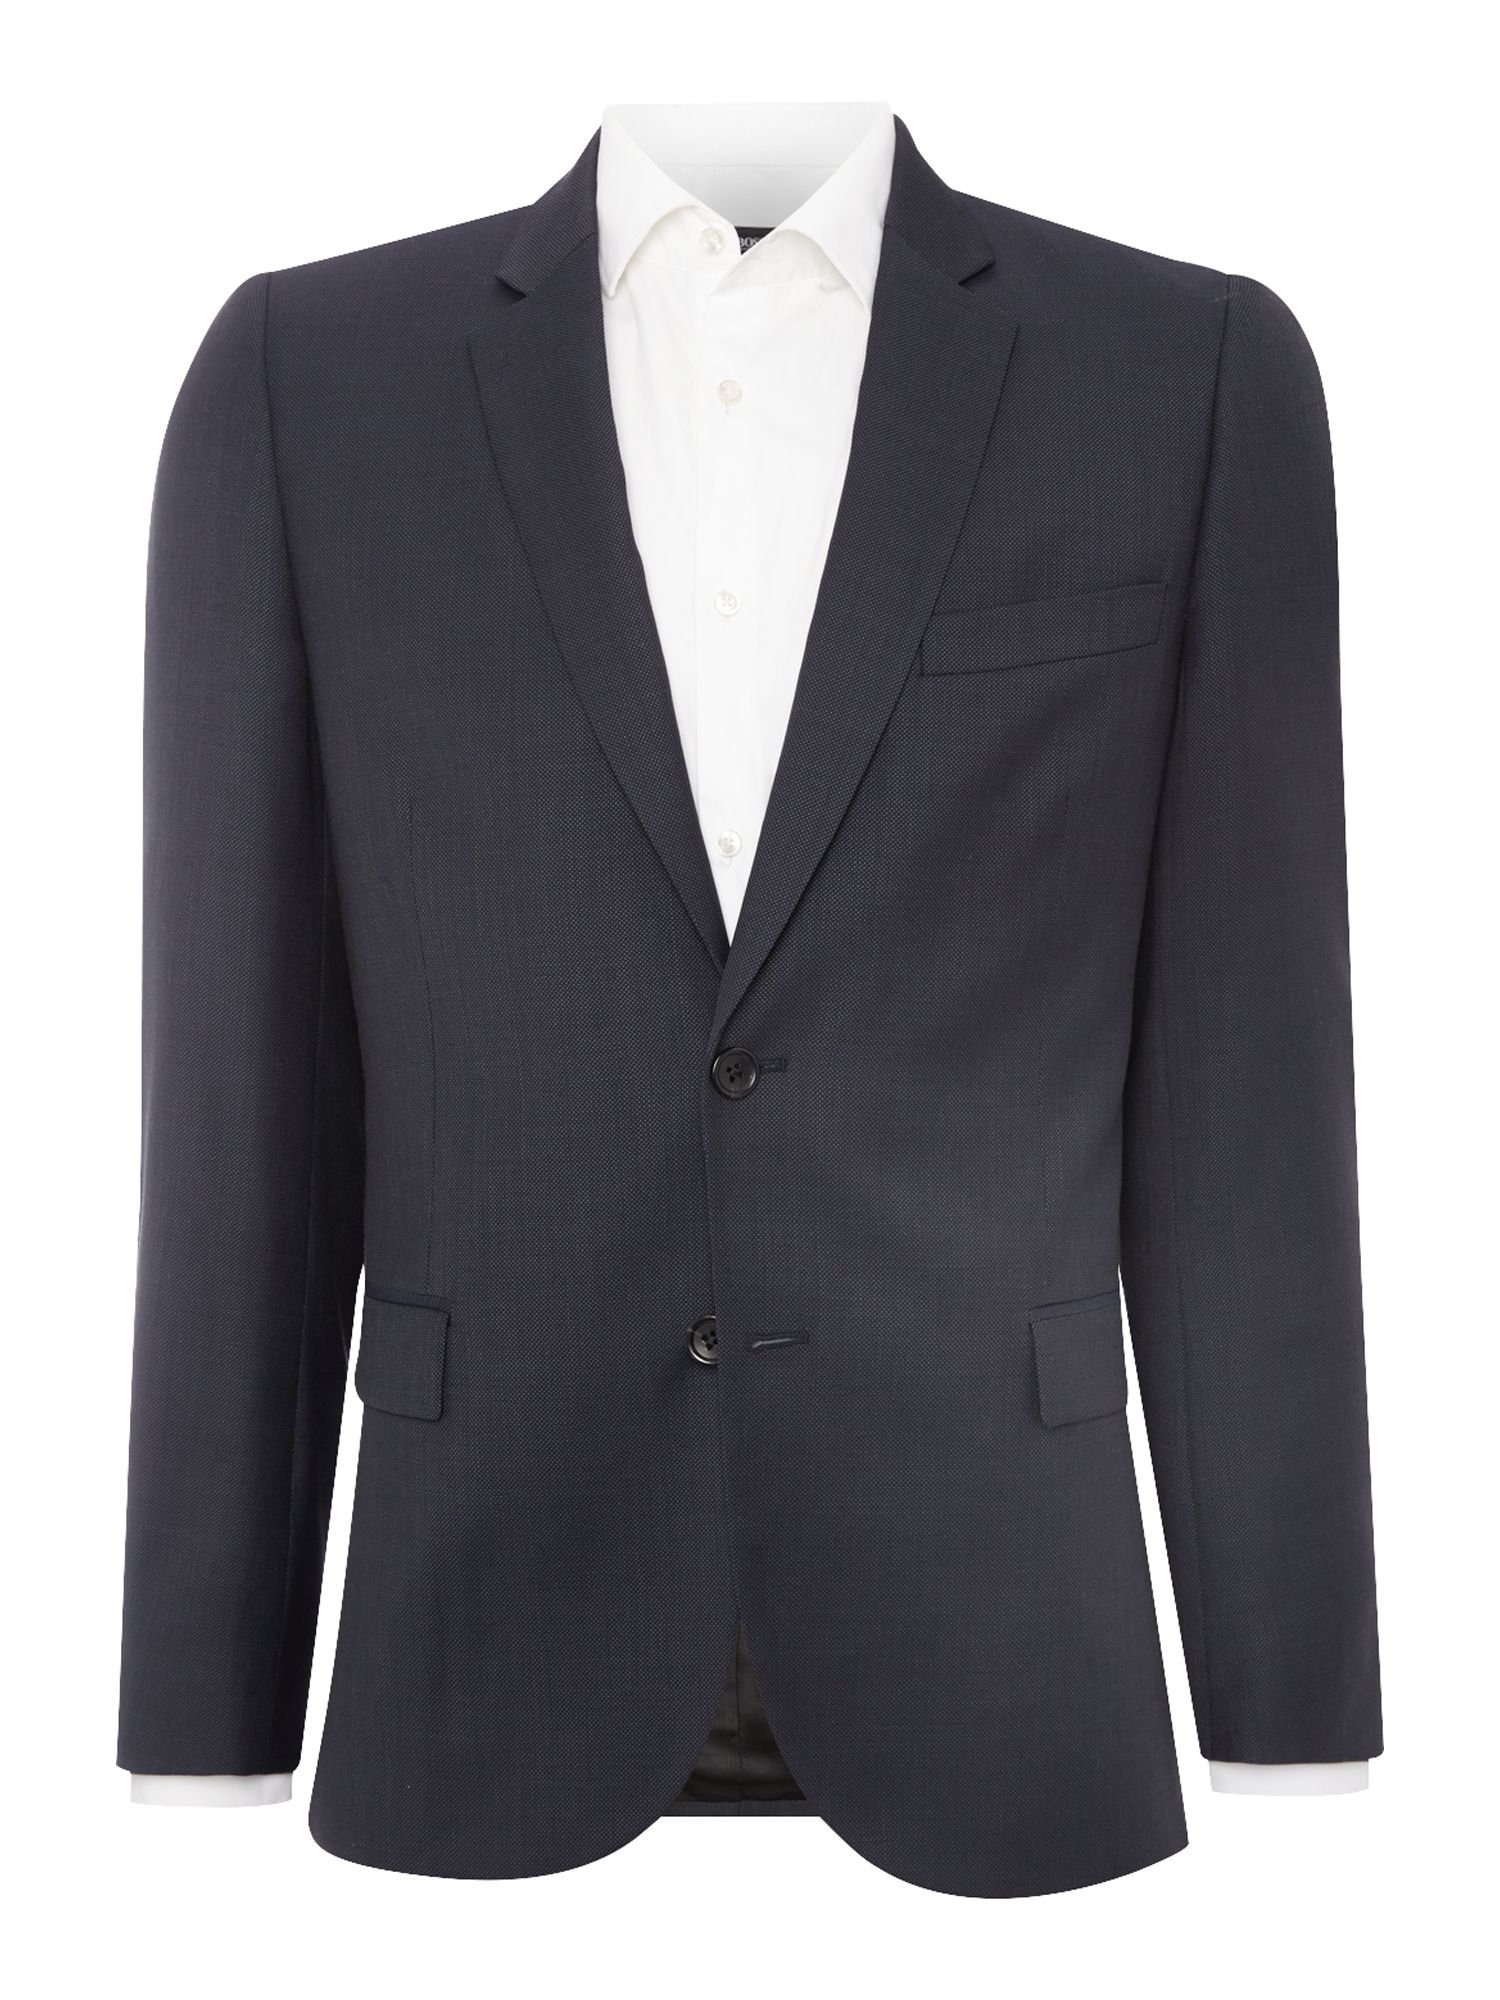 Find great deals on eBay for women cheap suits. Shop with confidence. Skip to main content. eBay: WOMAN'S CHEAP & CHIC BY MOSCHINO BLACK TWO PIECE SUIT SKIRT JACKET SZ Pre-Owned. $ Buy It Now +$ shipping. Cheap Detective standing, wearing Black Suit in Front of Old Woman High Quality.